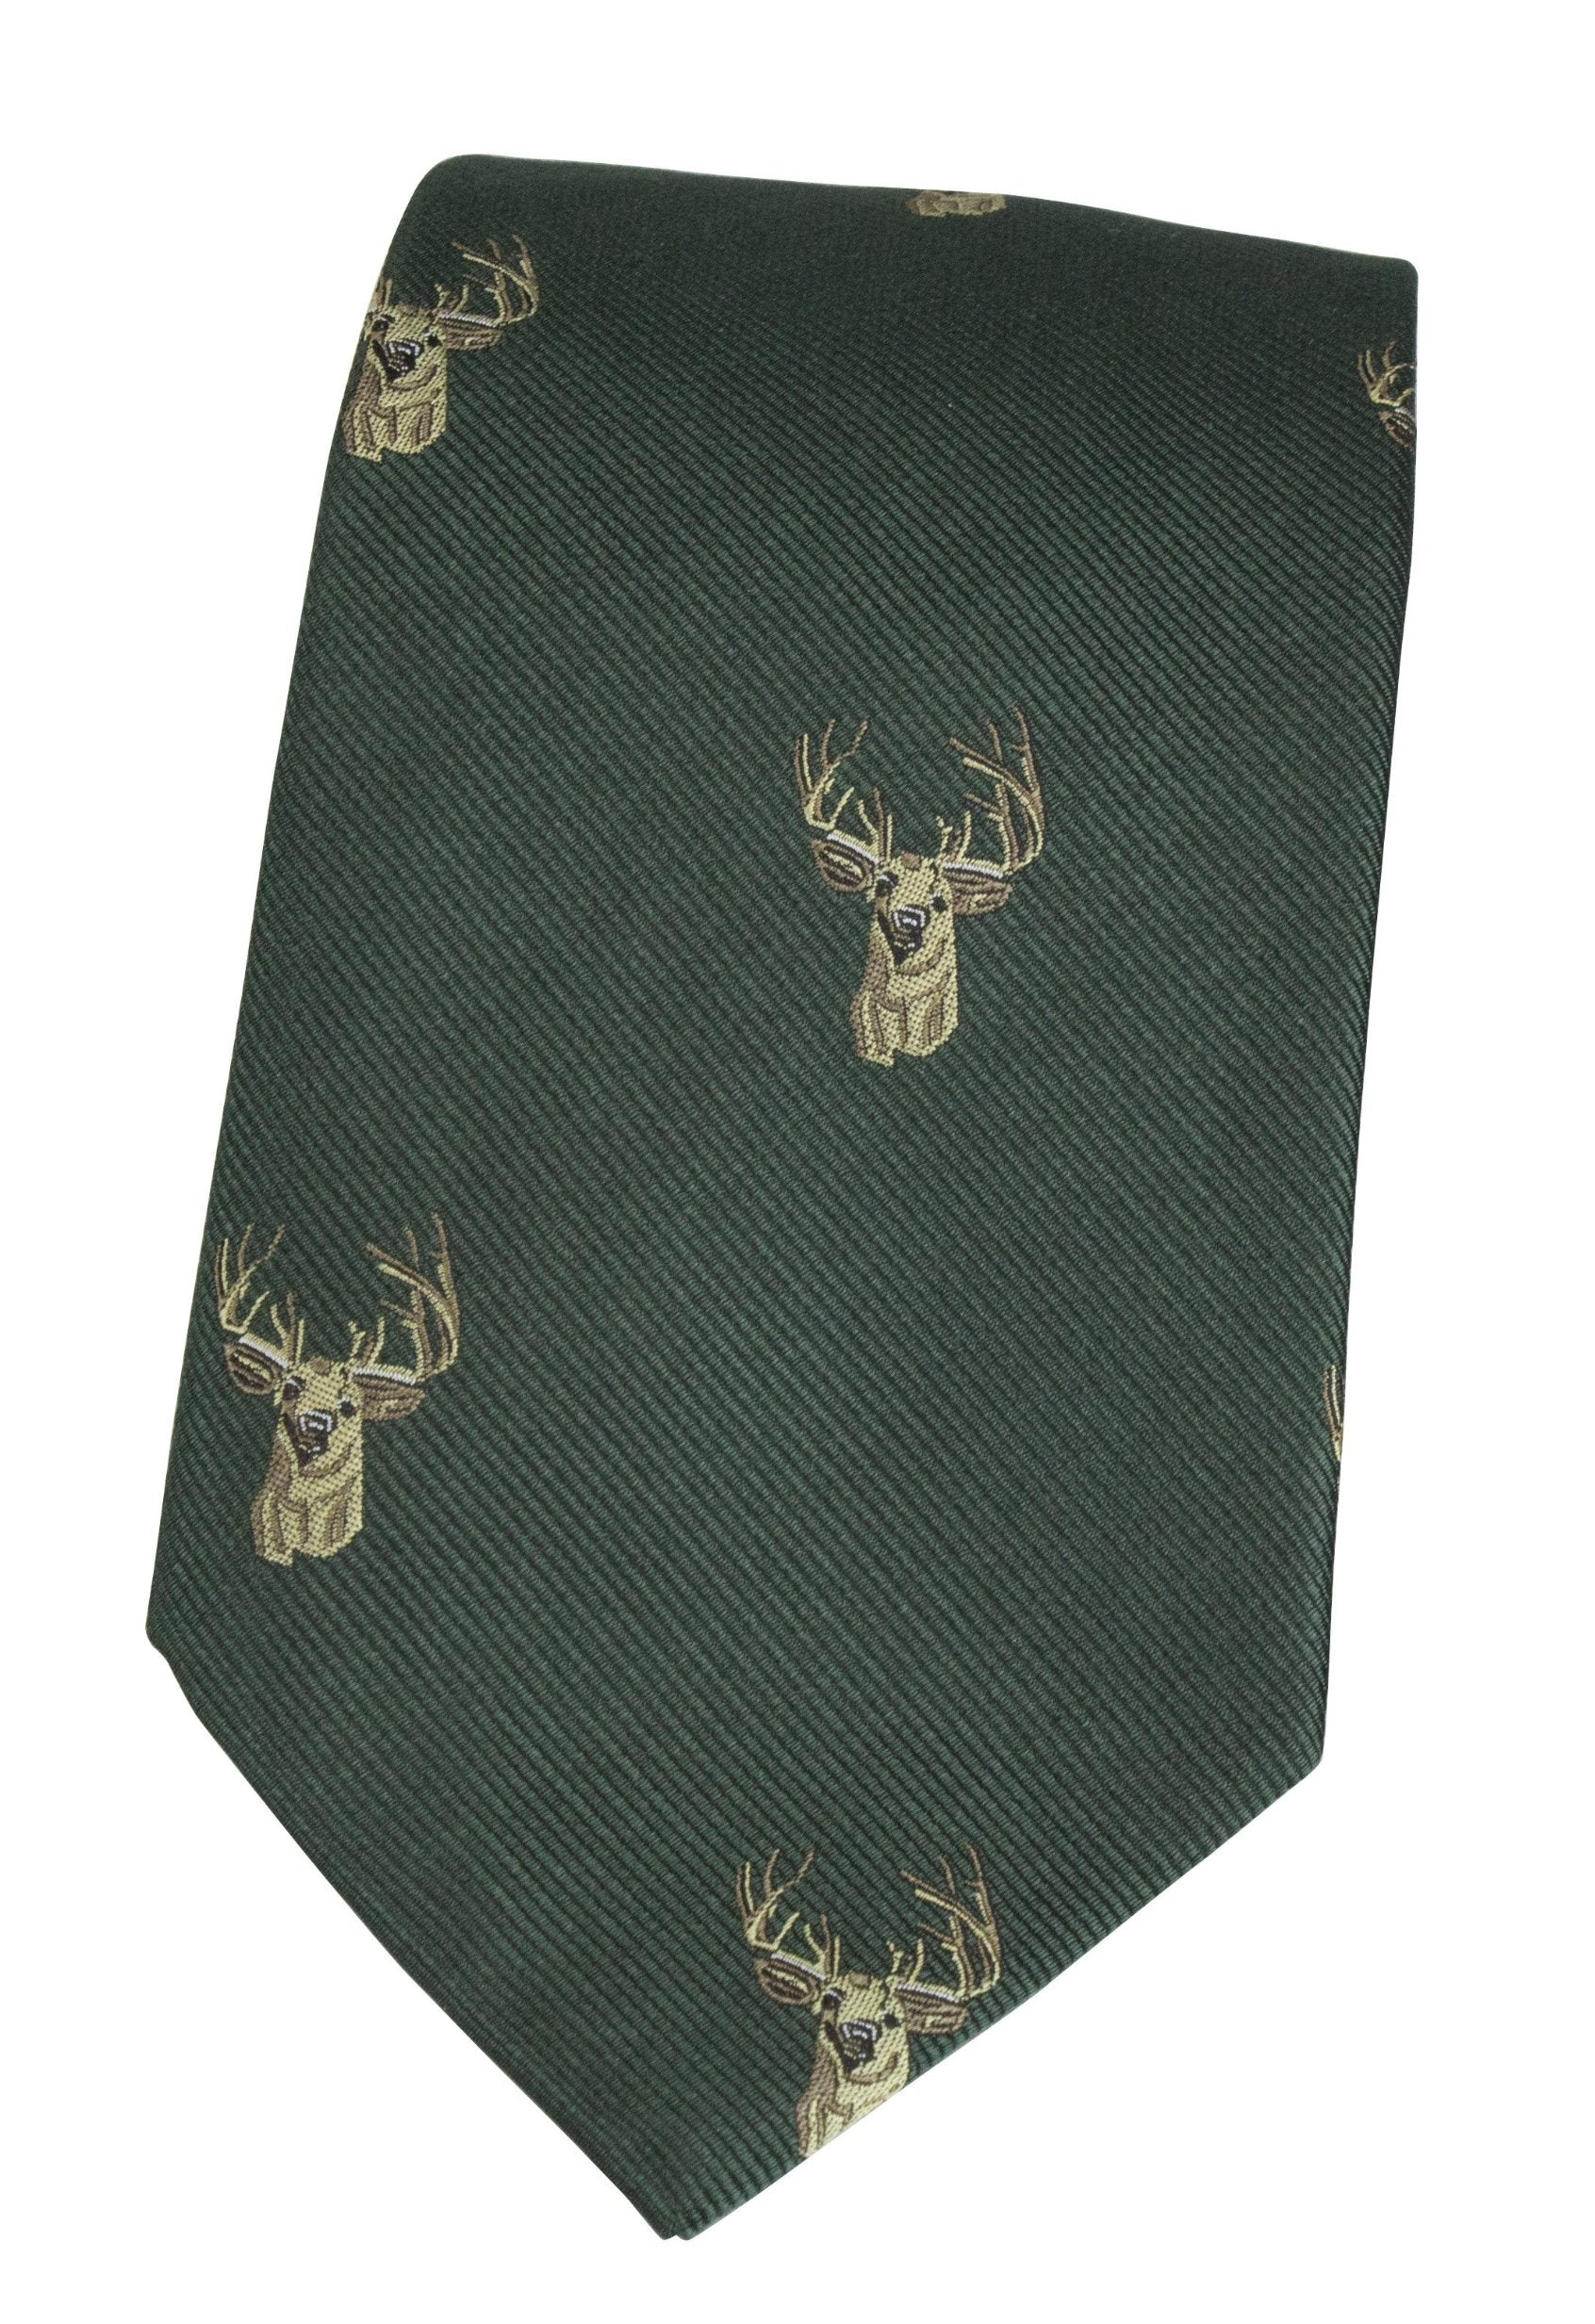 GT11 - 100% Silk Woven Tie - Stag - GREEN - Oxford Blue